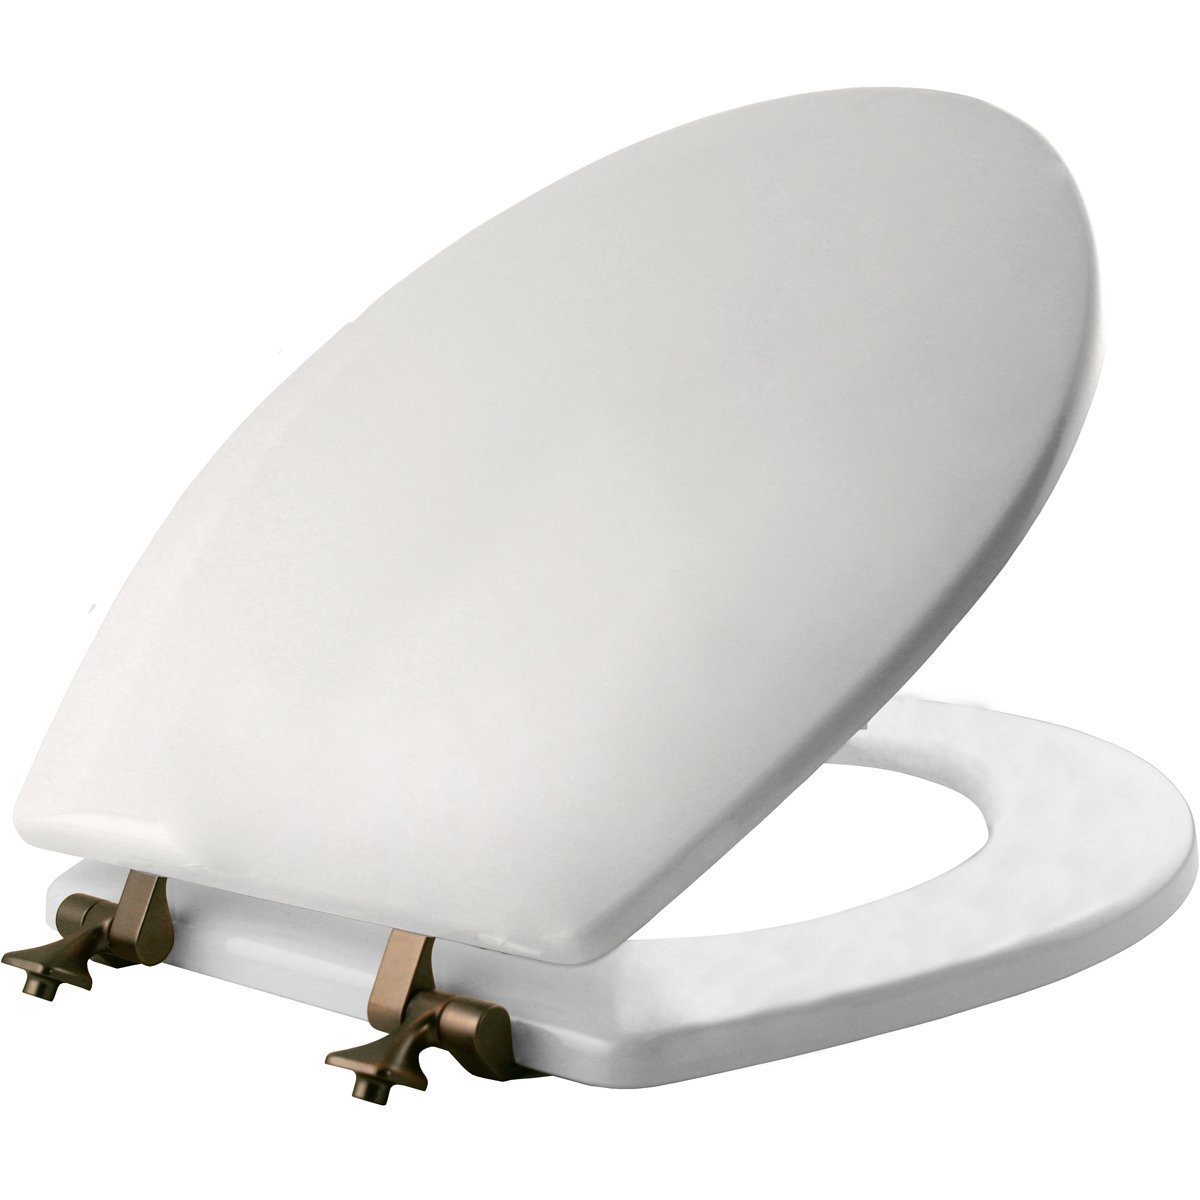 Mayfair Molded Wood Toilet Seat featuring STA-TITE Seat Fastening System & Oil-Rubbed Bronze Hinges, Round, White, 44ORA 000